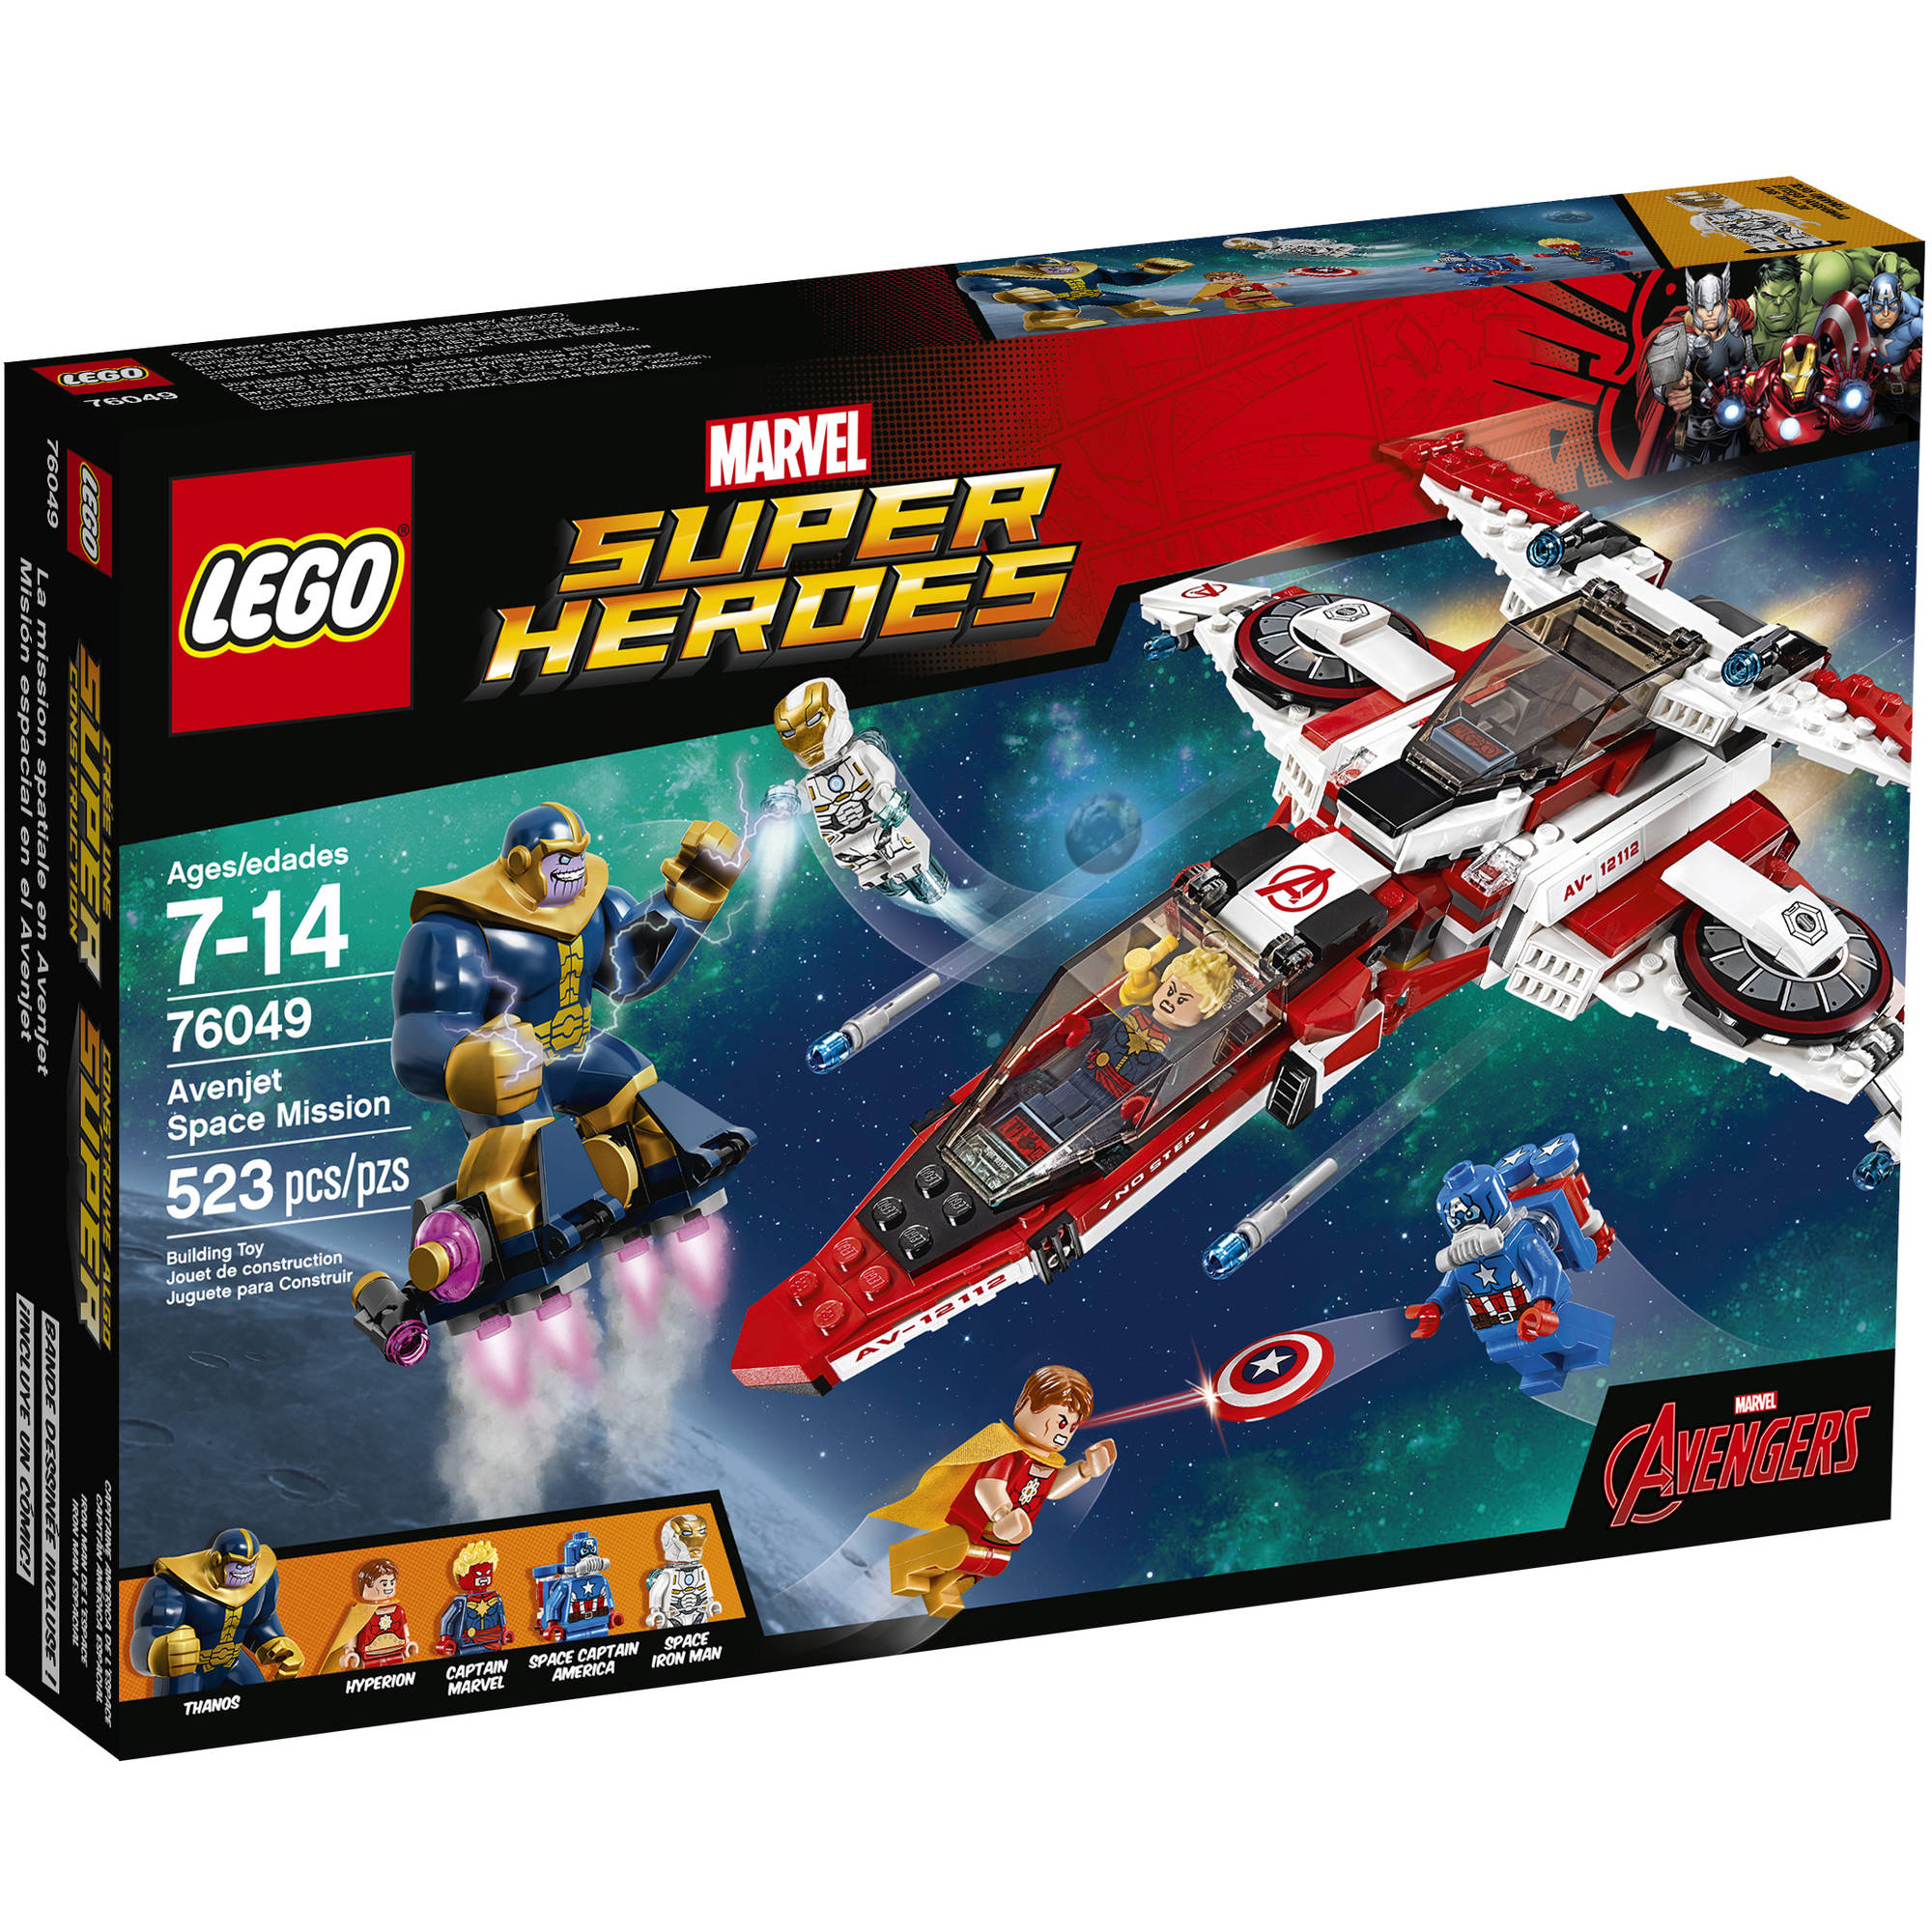 Lego Super Heroes Avenjet Space Mission, 76049 by LEGO Systems, Inc.